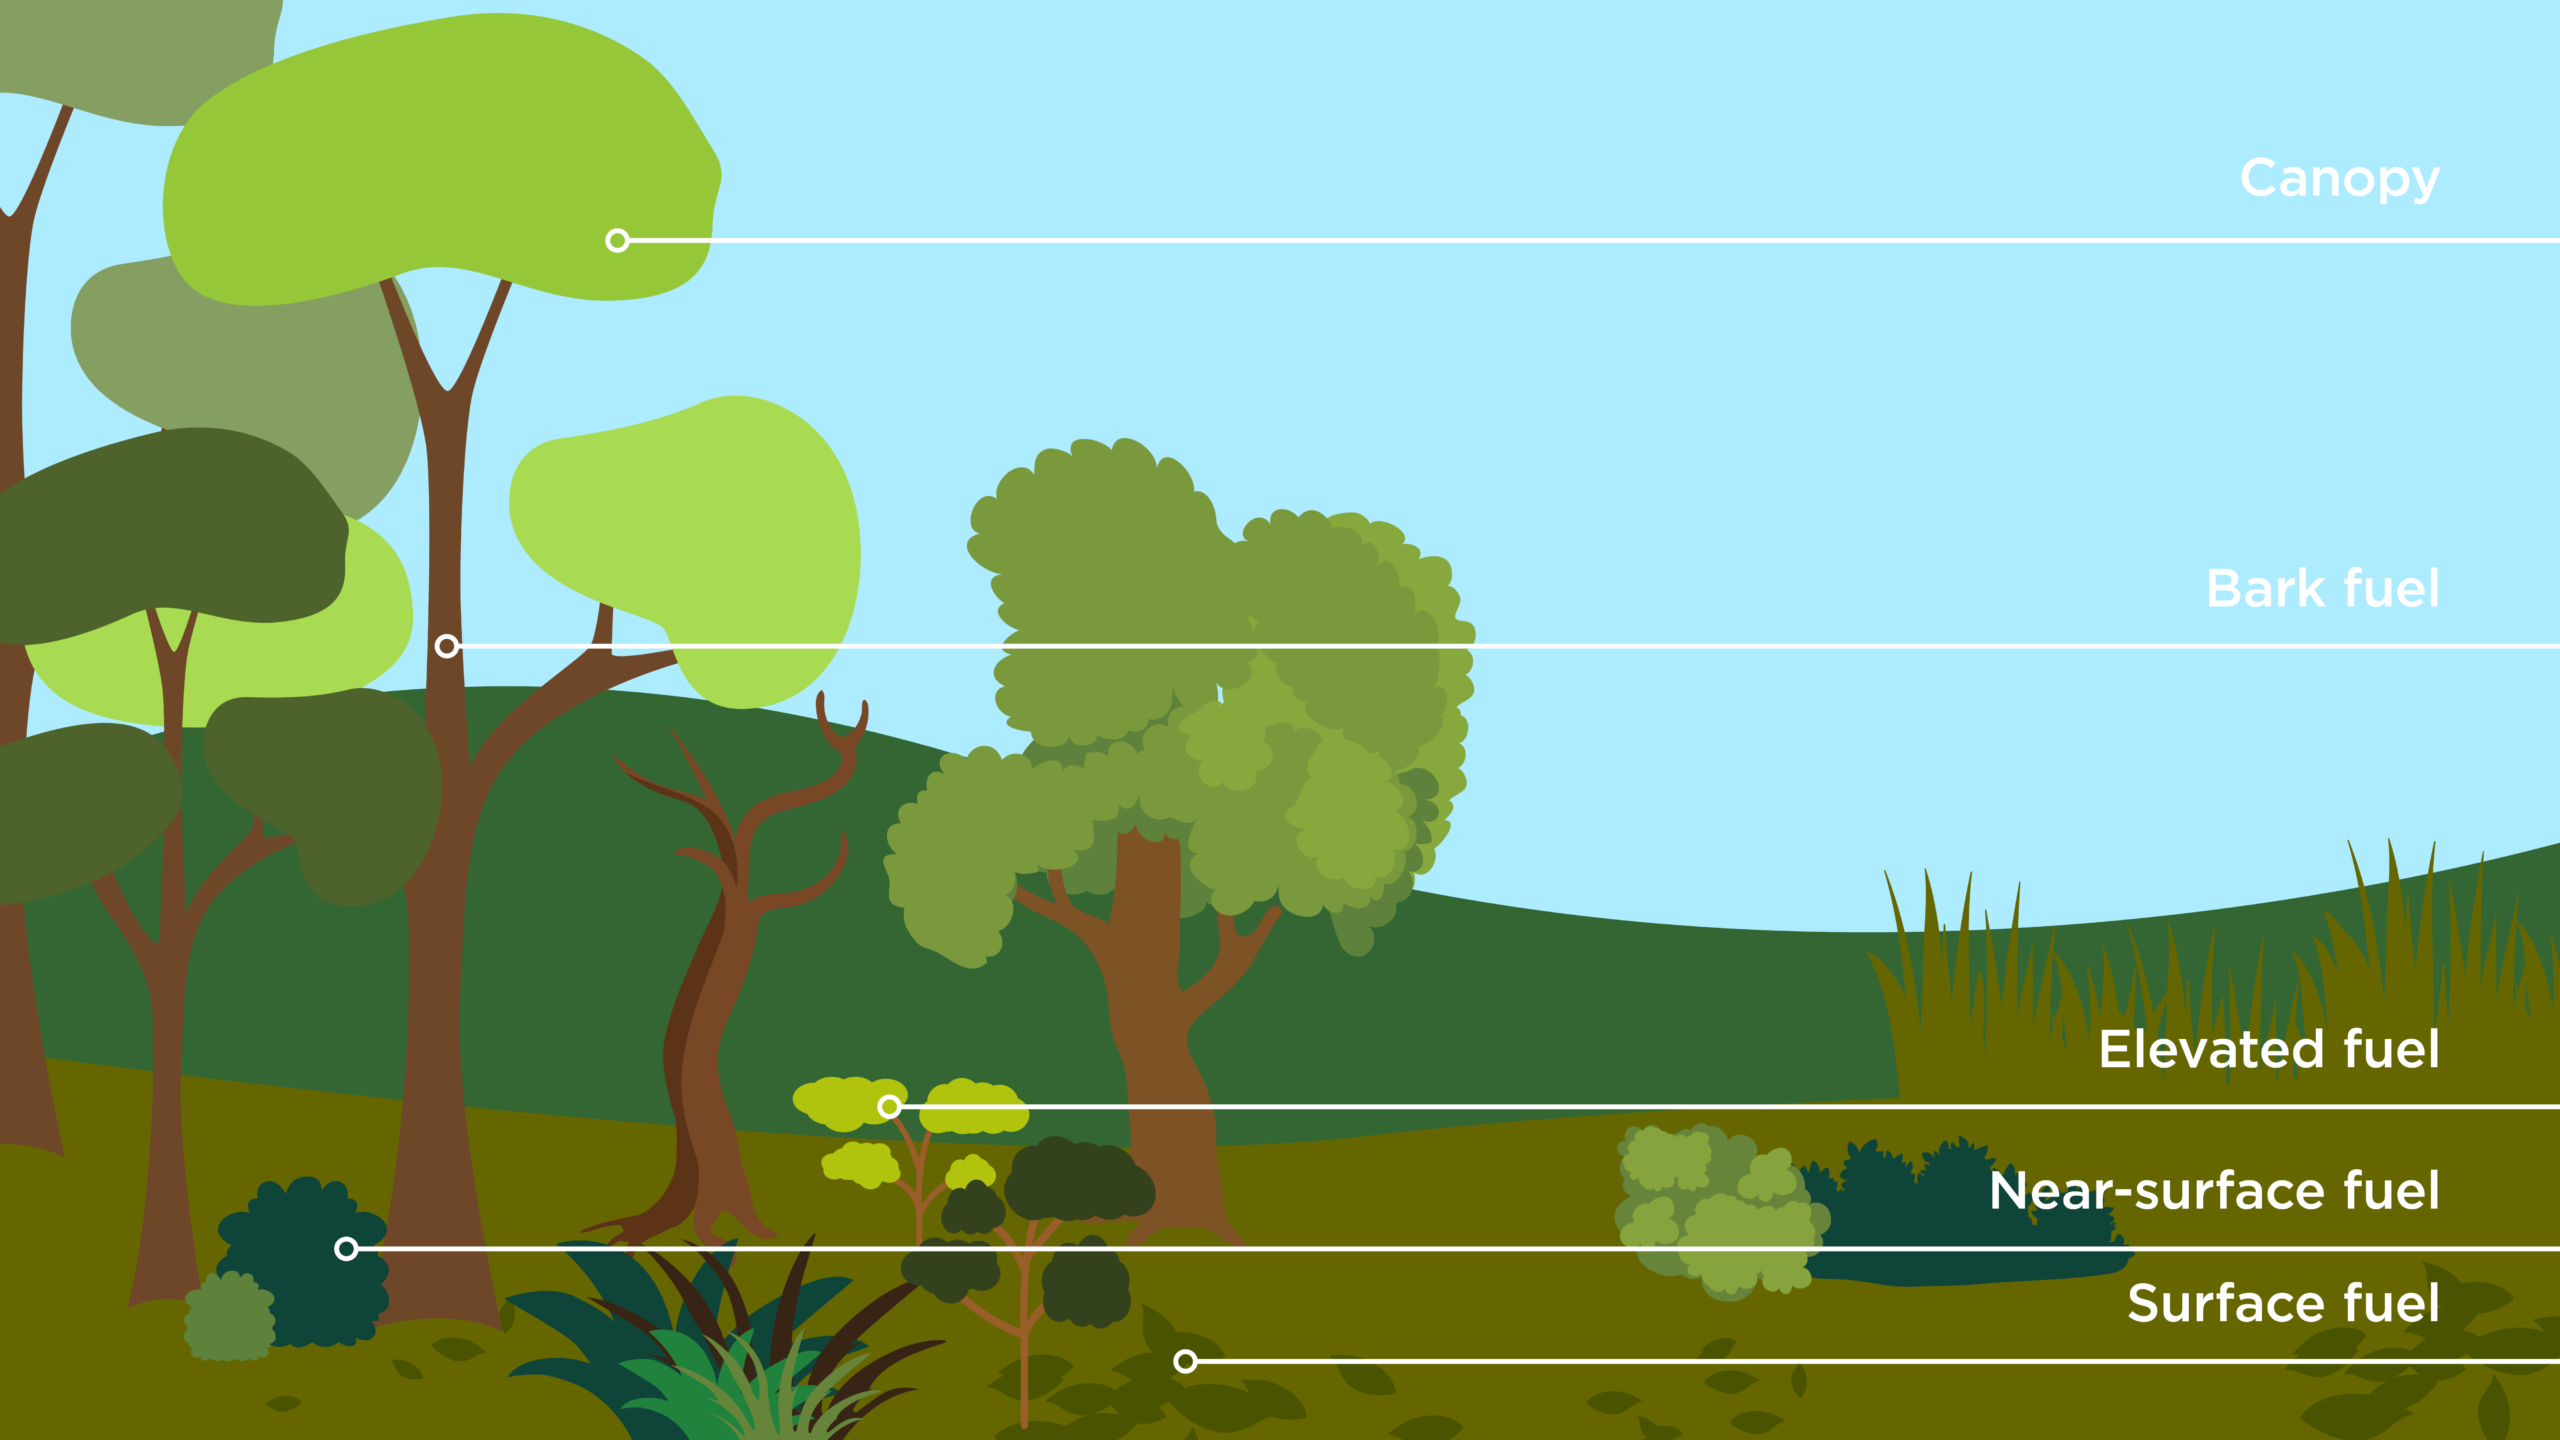 infographic showing the canopy at the top of the trees, bark fuel on the tree trunks, elevated fuel in short plants, near-surface fuel in shrubs on the ground and surface fuel as leaves on the ground